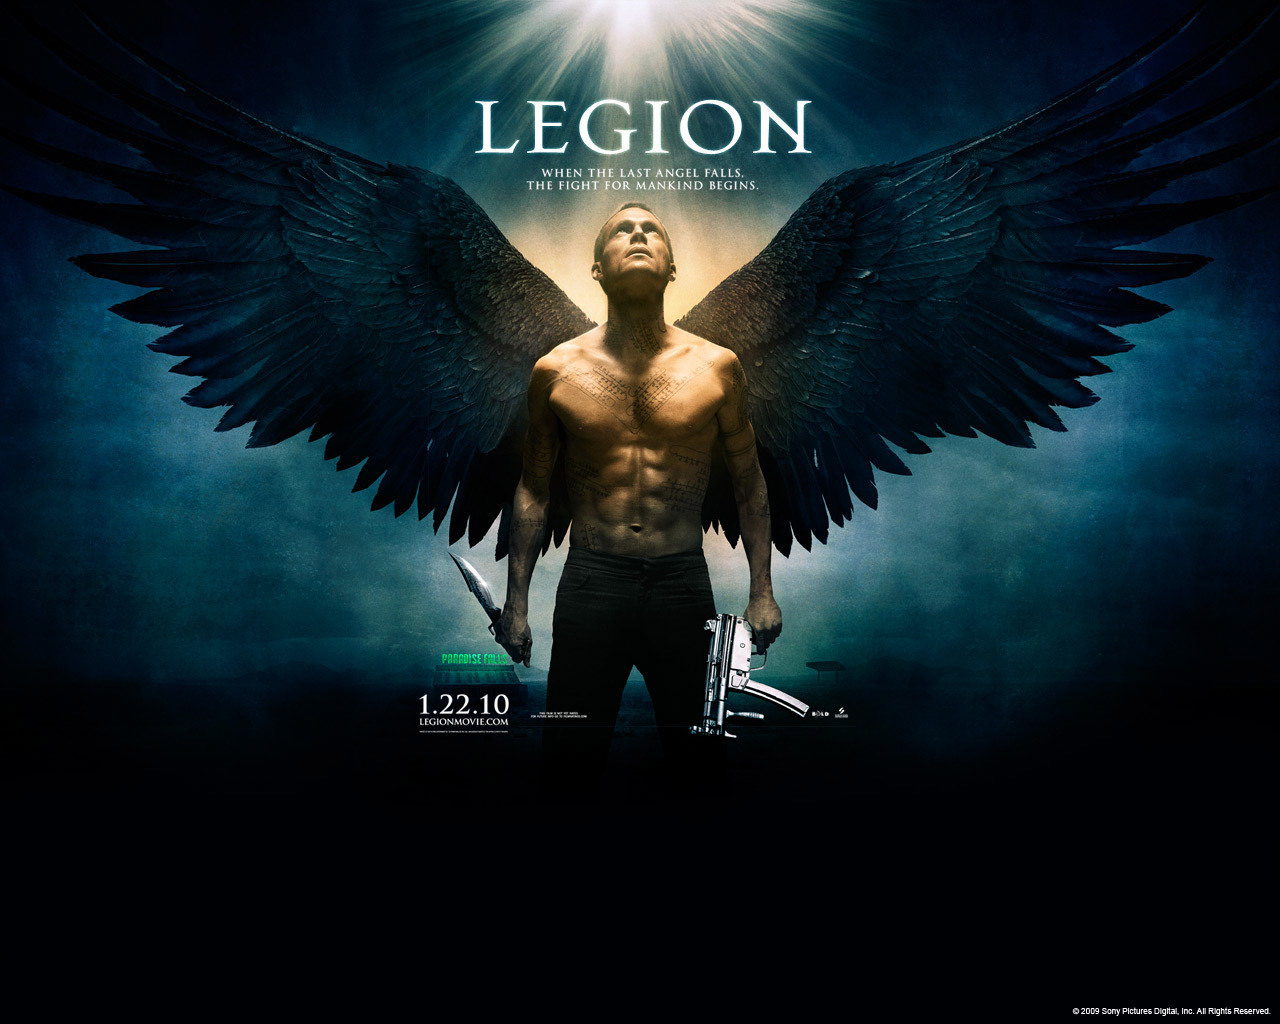 2010 legion movie wallpapers - photo #5